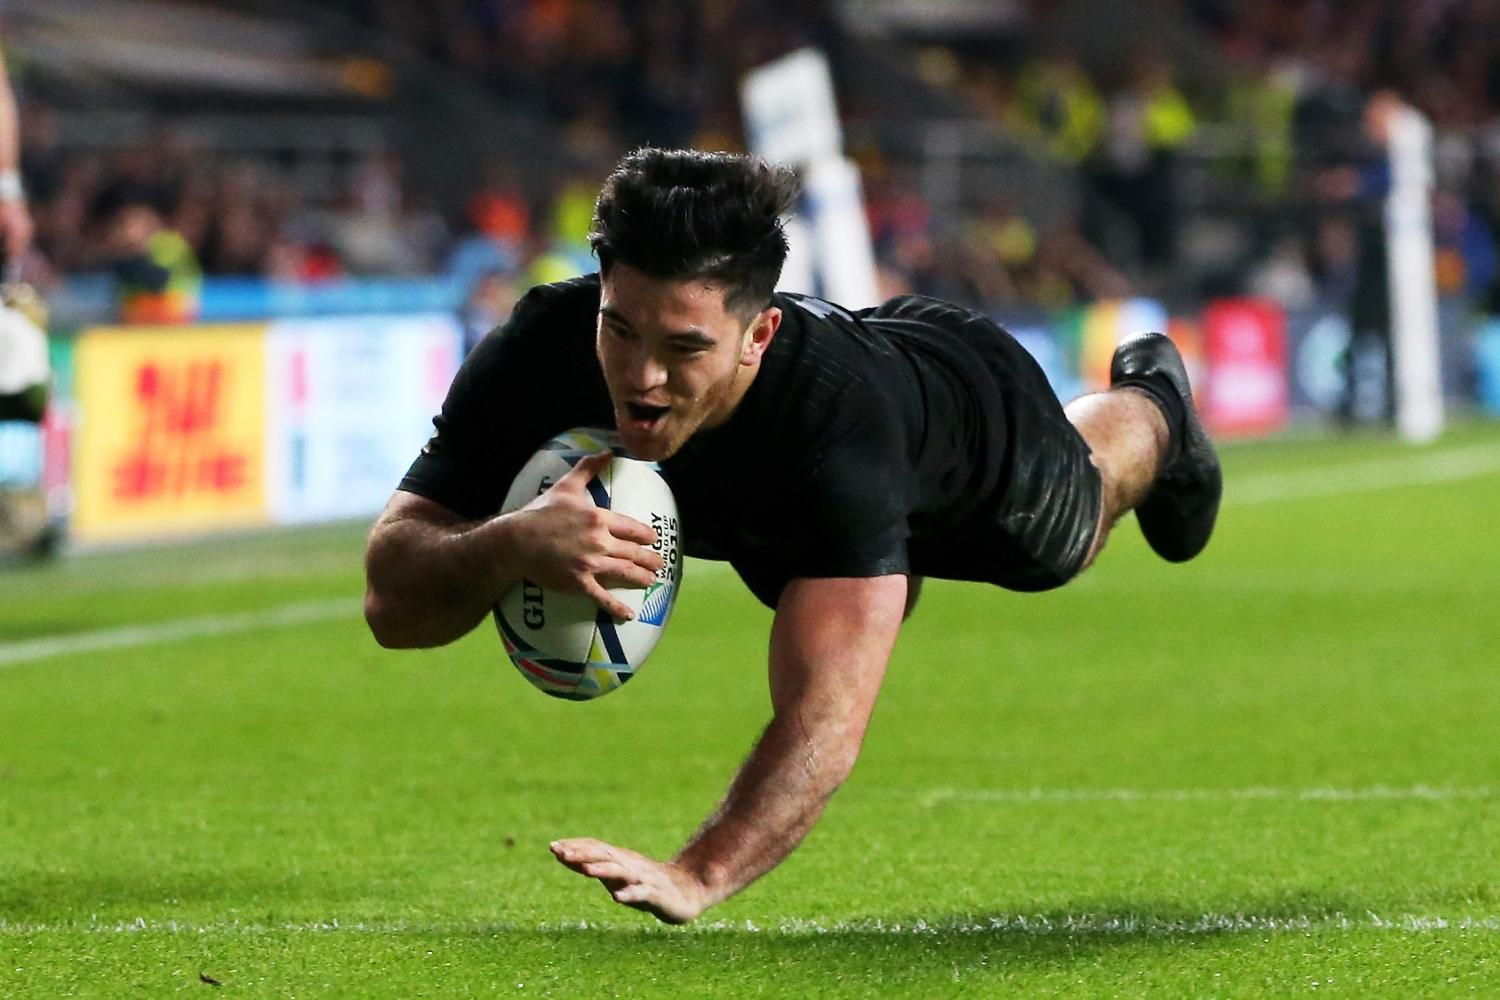 Nehe Milner Skudder Nova Zelanda 34 17 Australia Rwcfinal Nzl Vs Aus Teamallblacks Vs Strongerasone Wallabies All Blacks Rugby World Cup Rugby